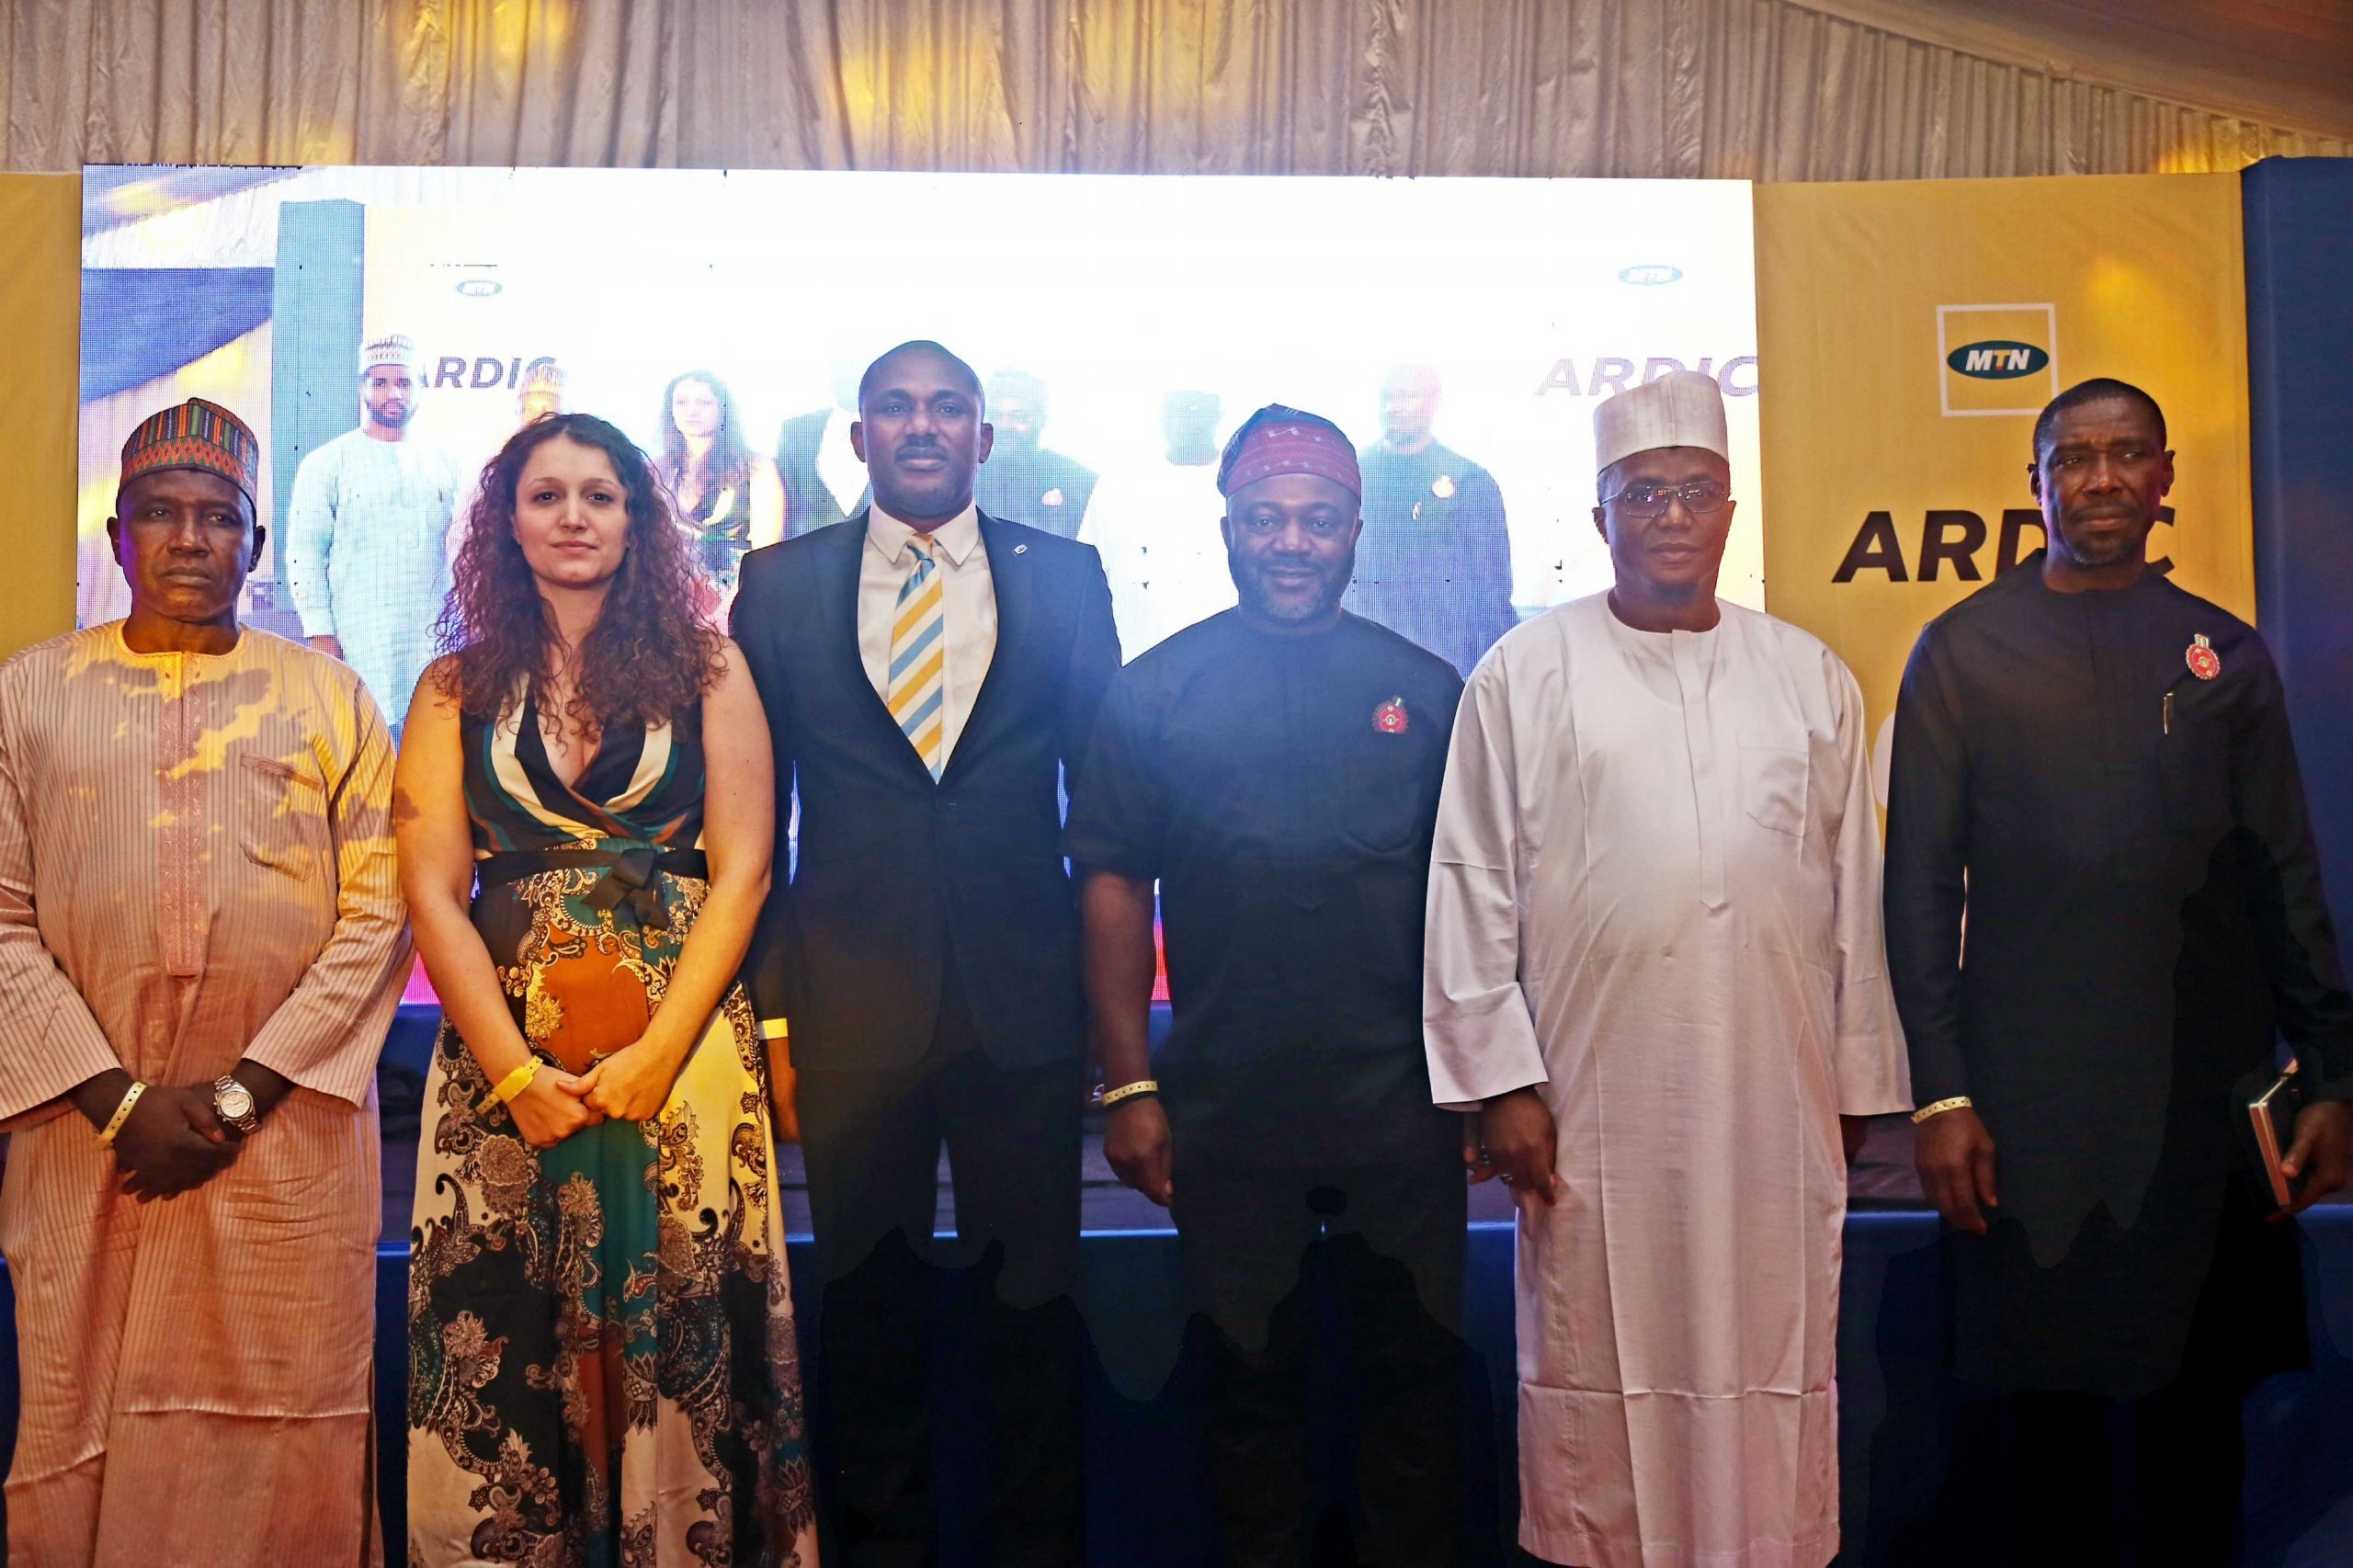 MTN Nigeria Launches Academic Research Development and Innovative Challenge (ARDIC) in Abuja - Brand Spur